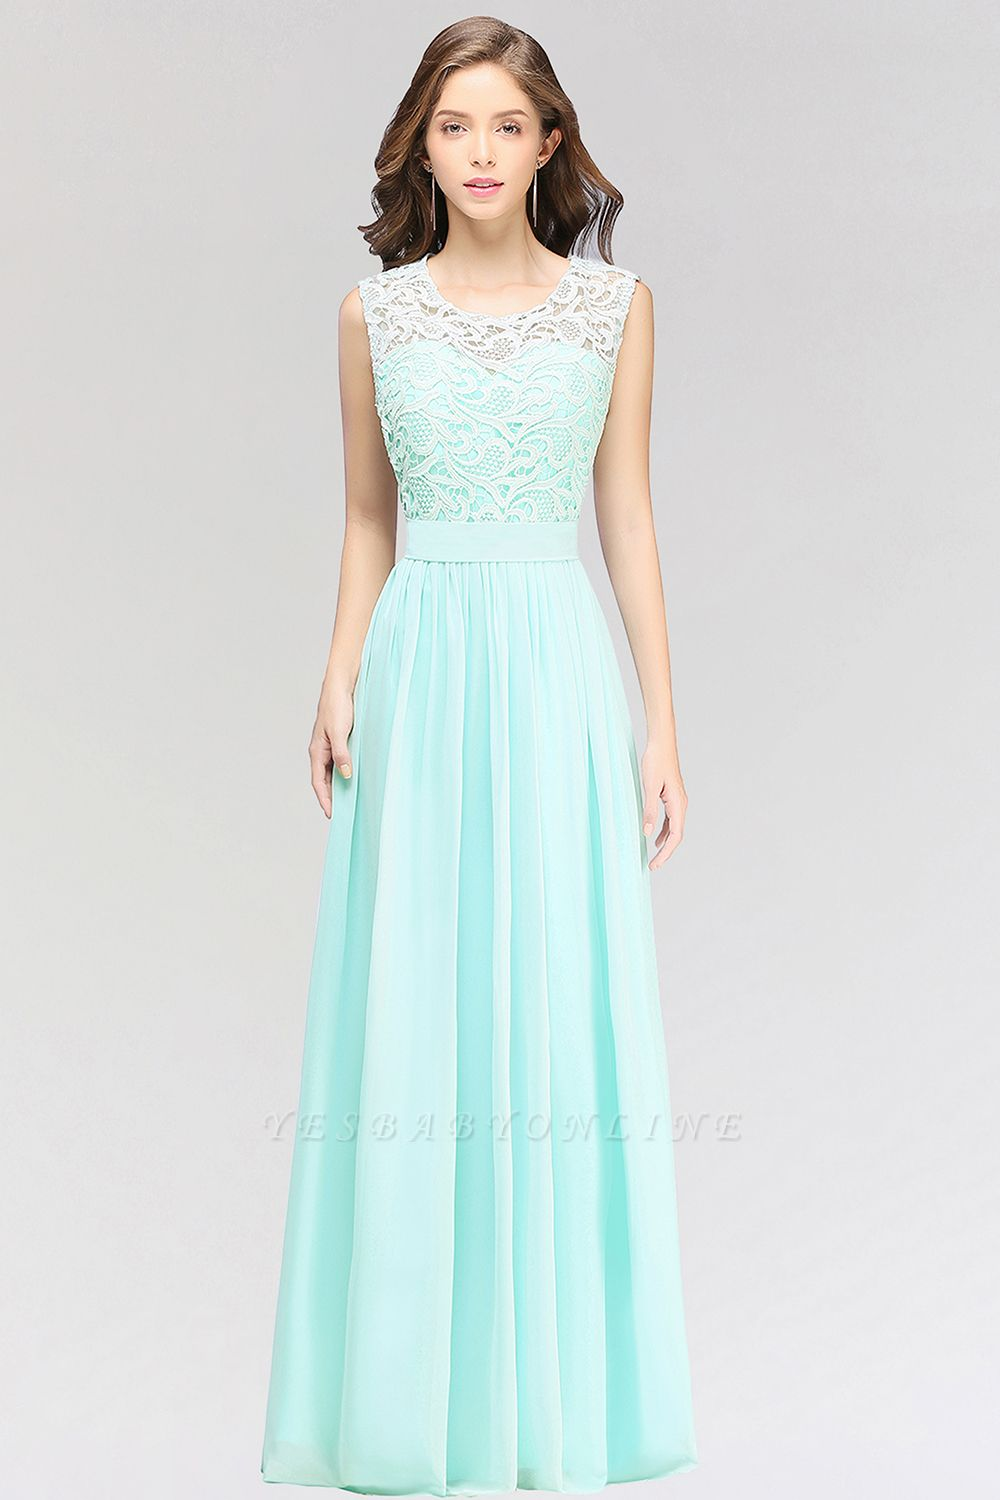 A-line  Lace Jewel Sleeveless Floor-Length Bridesmaid Dress with Ruffles